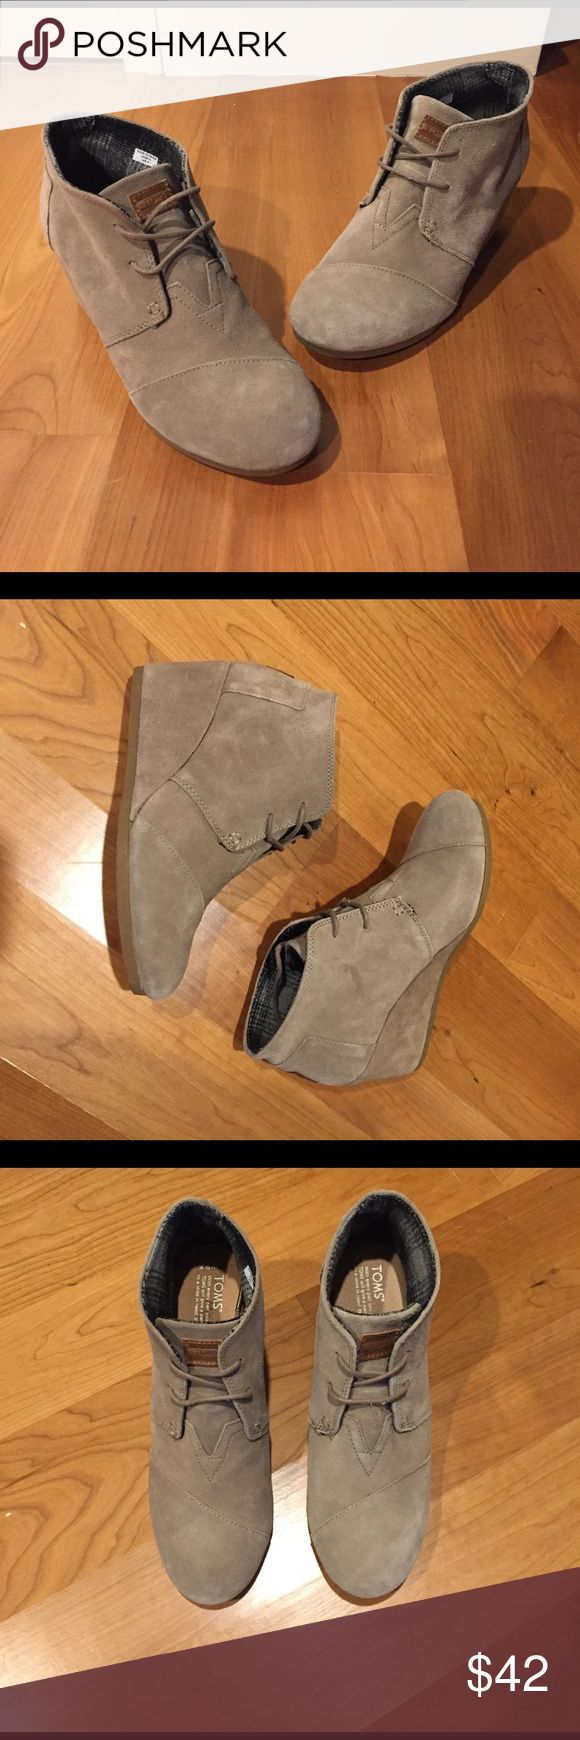 TOMS taupe suede wedges TOMS taupe suede desert wedges in a size 9.5. They are in amazing condition! TOMS Shoes Wedges